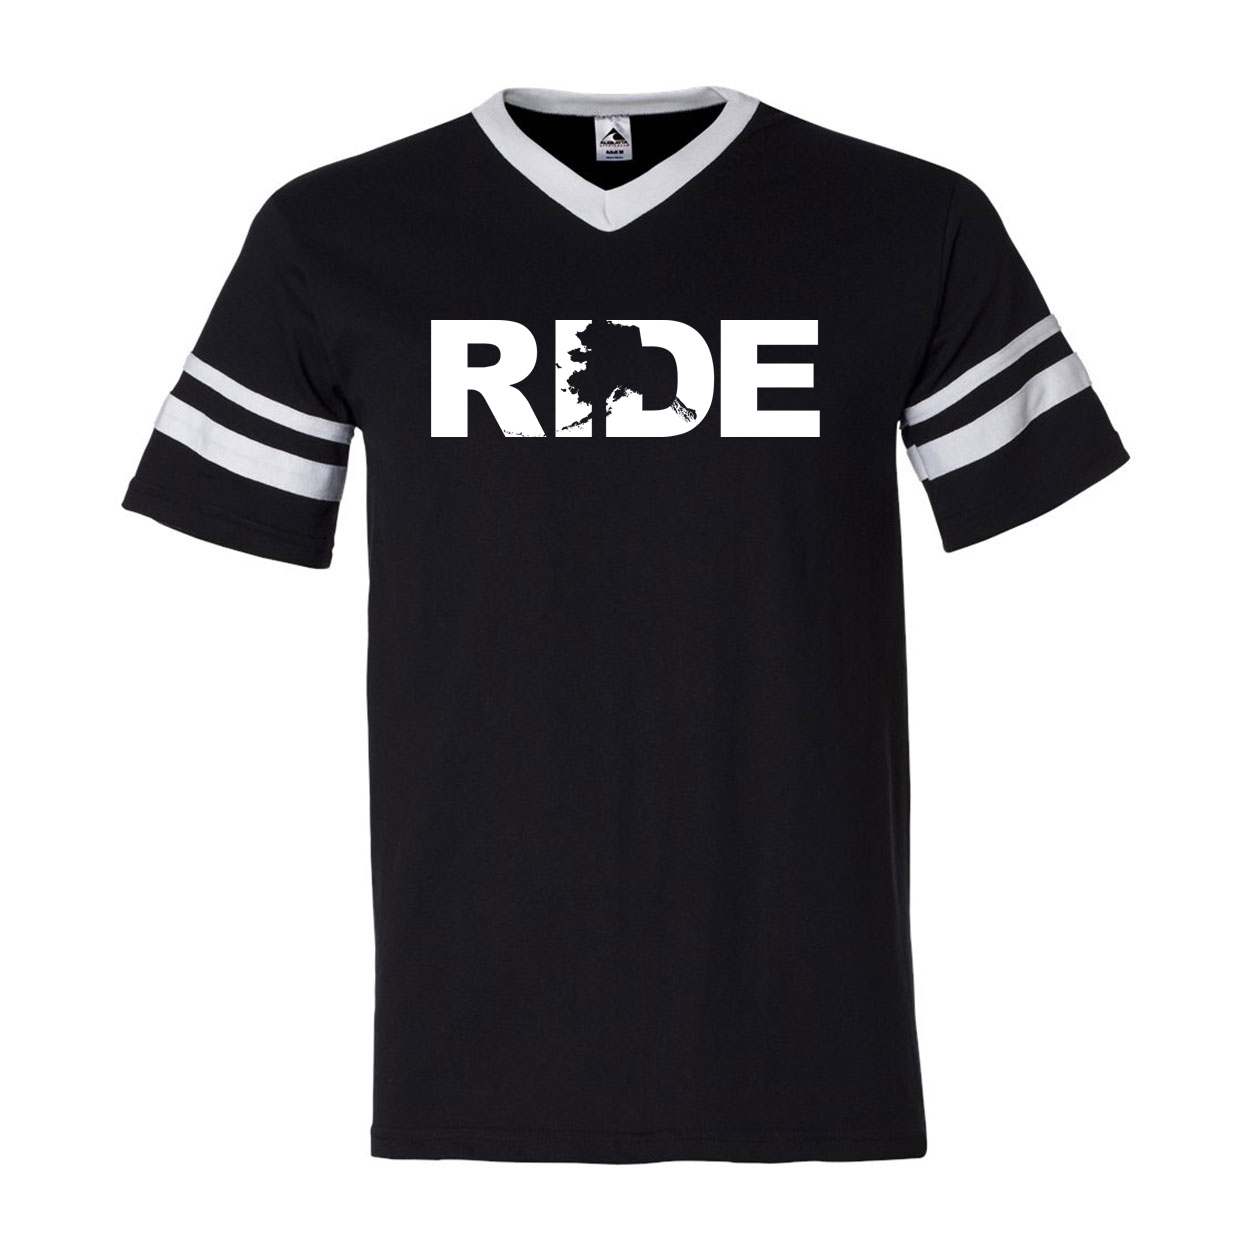 Ride Alaska Classic Premium Striped Jersey T-Shirt Black/White (White Logo)